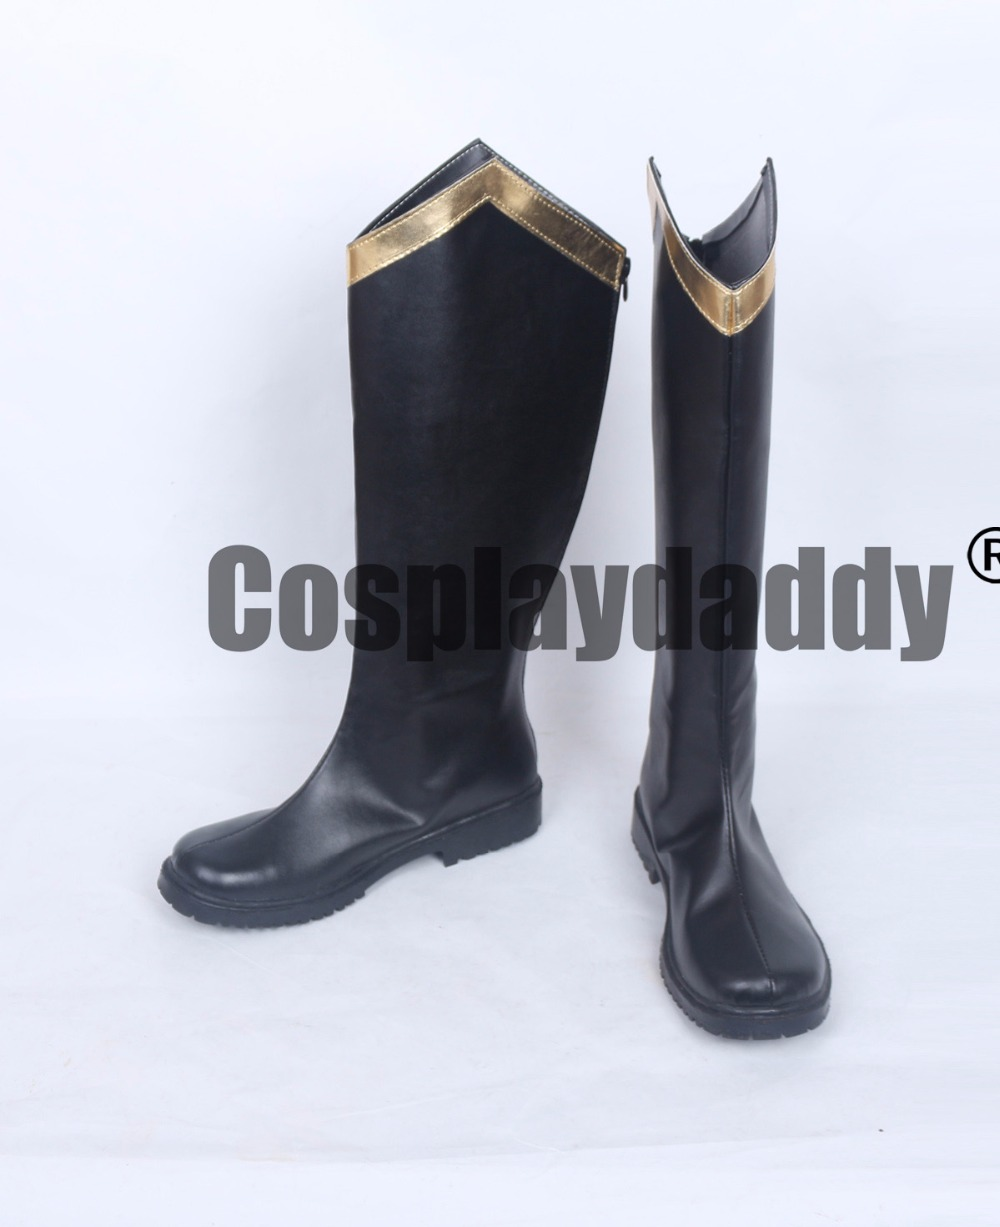 Prince Shoes Cosplay From Noveltyamp; Aliexpress 8cinderella Us47 S008 Film On Movie Kit Boots Special In 2015 Charming Long Use 8wOPXnkN0Z